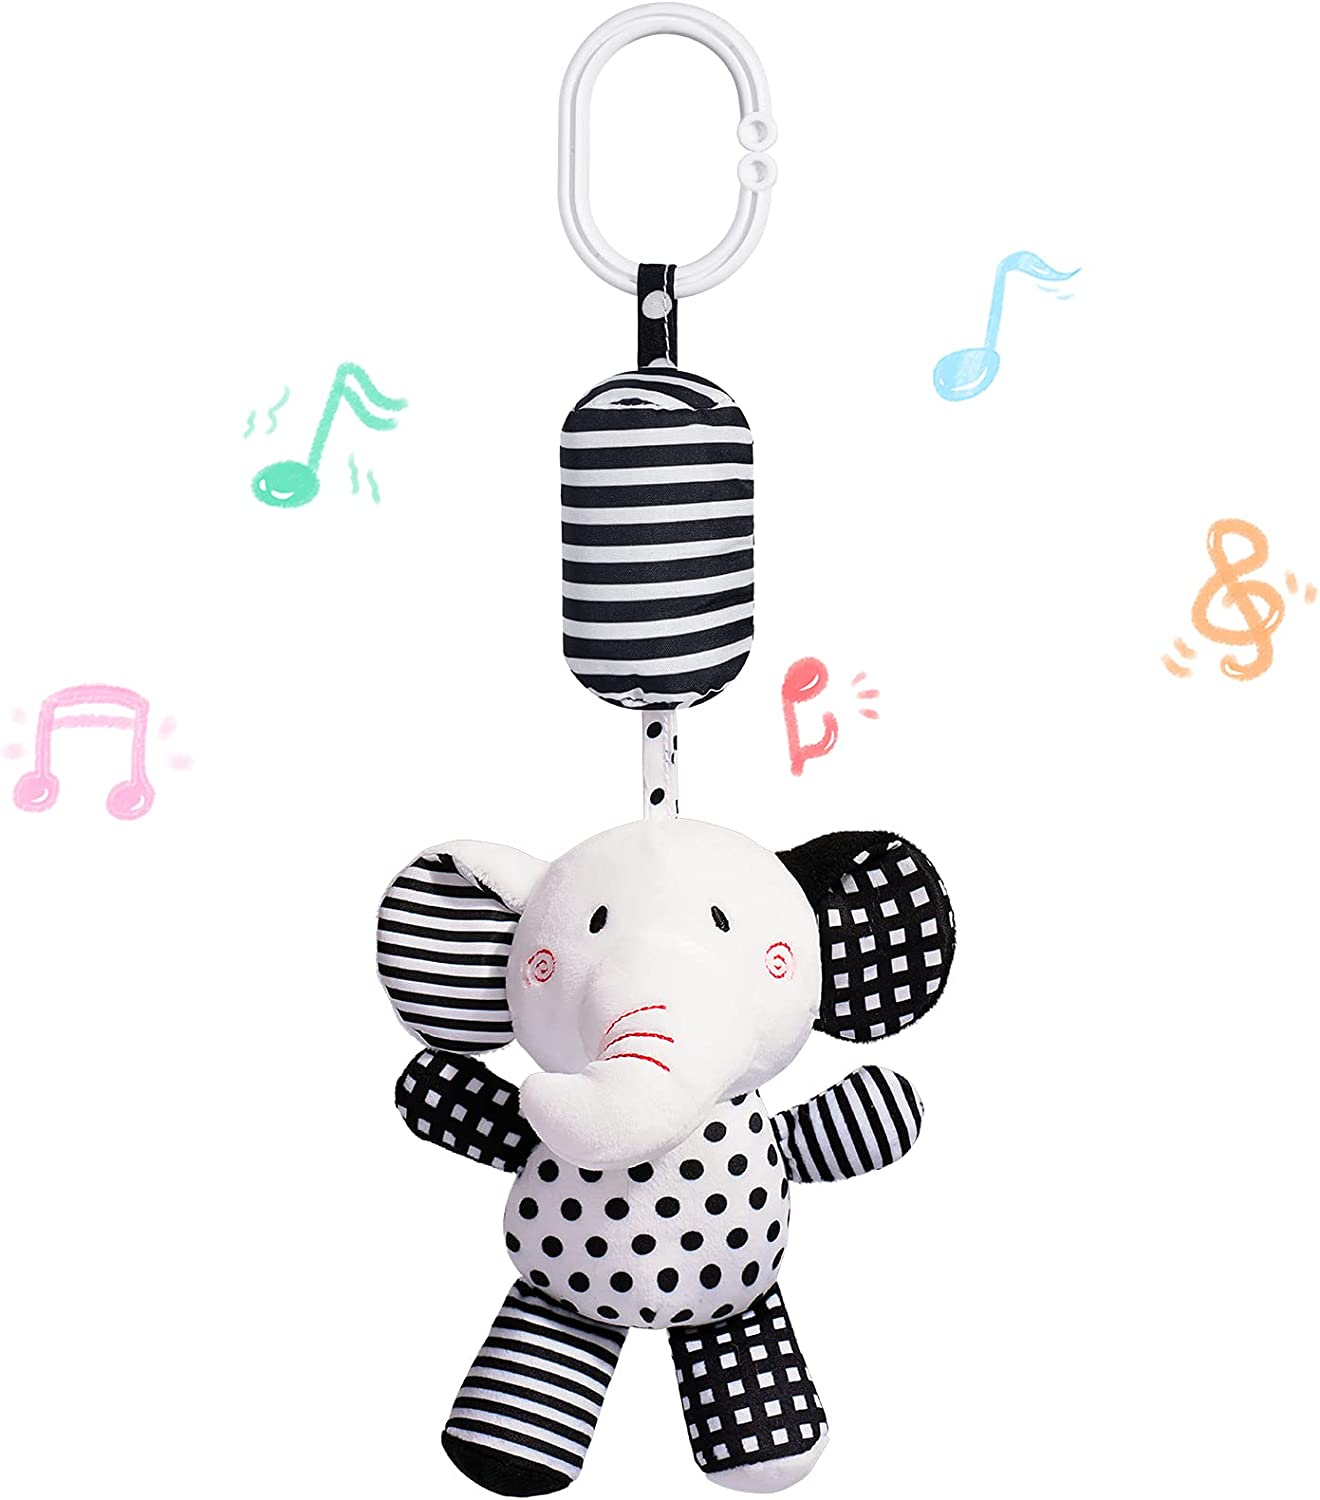 Feneya Baby Hanging Rattle Toys, 1pc Soft Cartoon Animals Plush Toys with Sound, Hanging Toys of Infant Stroller Crib Car Seat, Gifts for Newborn Baby Infant Boys Girls 0-18 Months (Elephant)